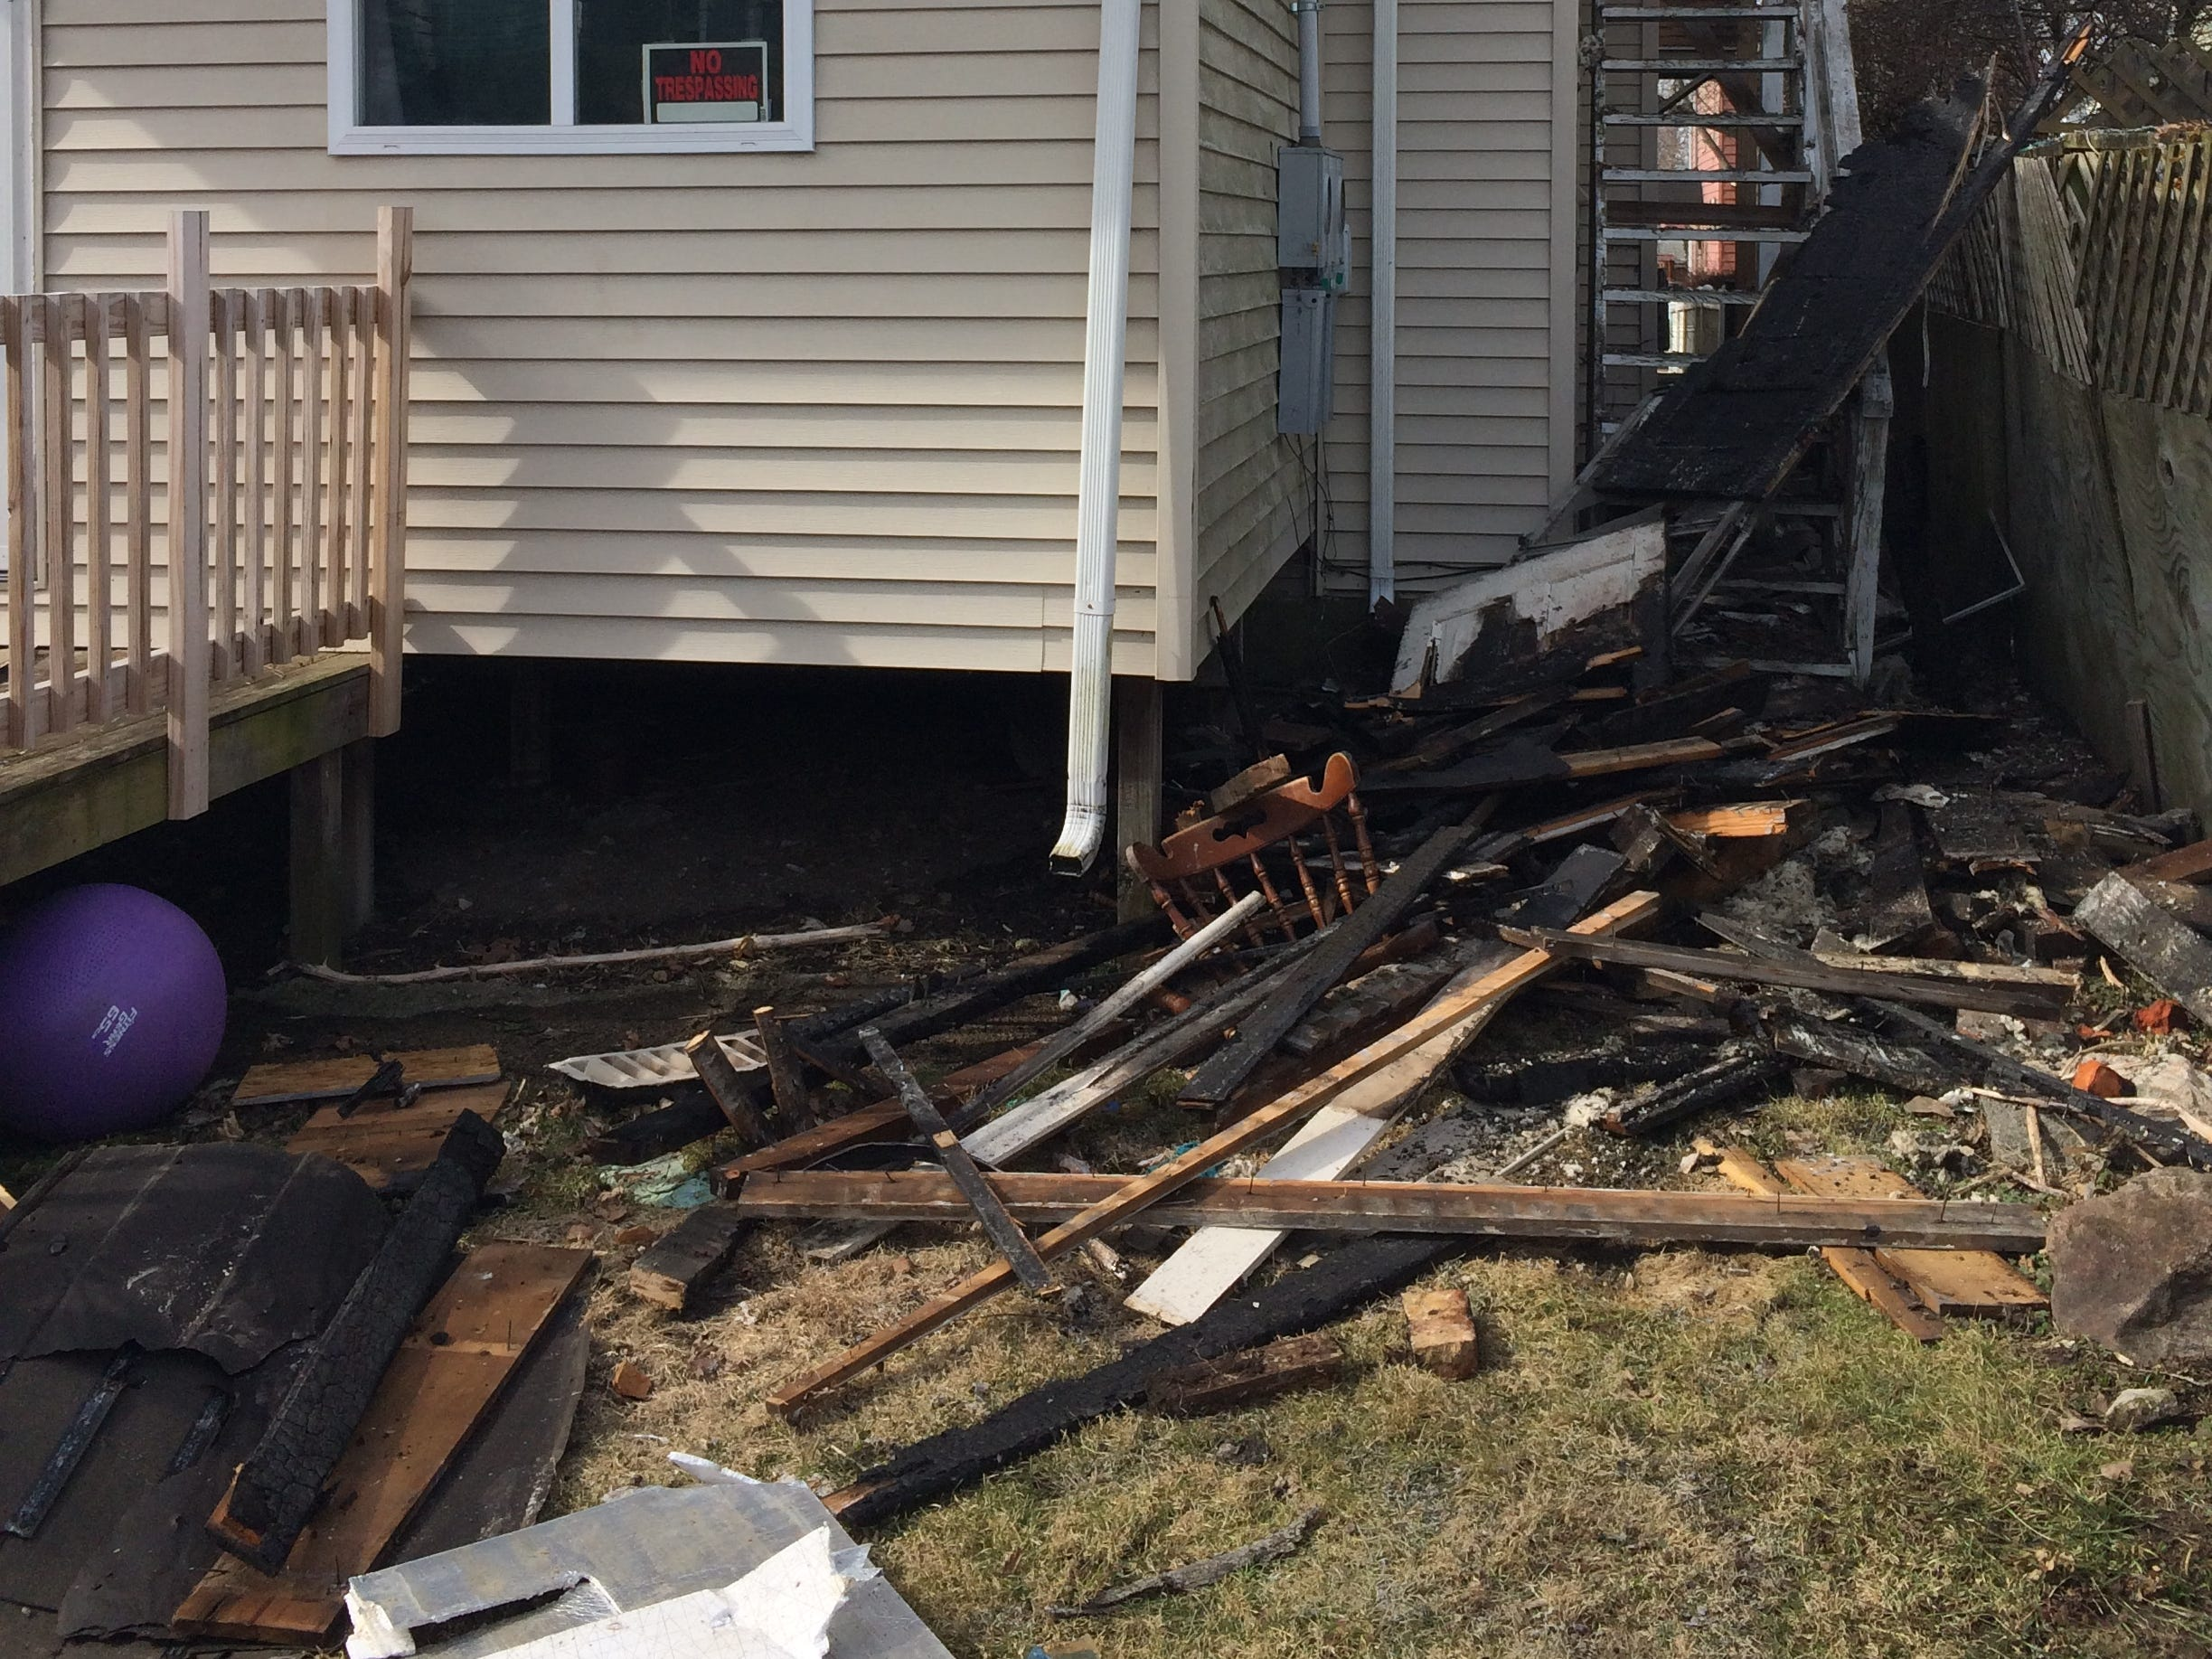 Charred materials litter the backyard and damage to an upstairs apartment is visible after a Friday morning fire on South 12th Street.